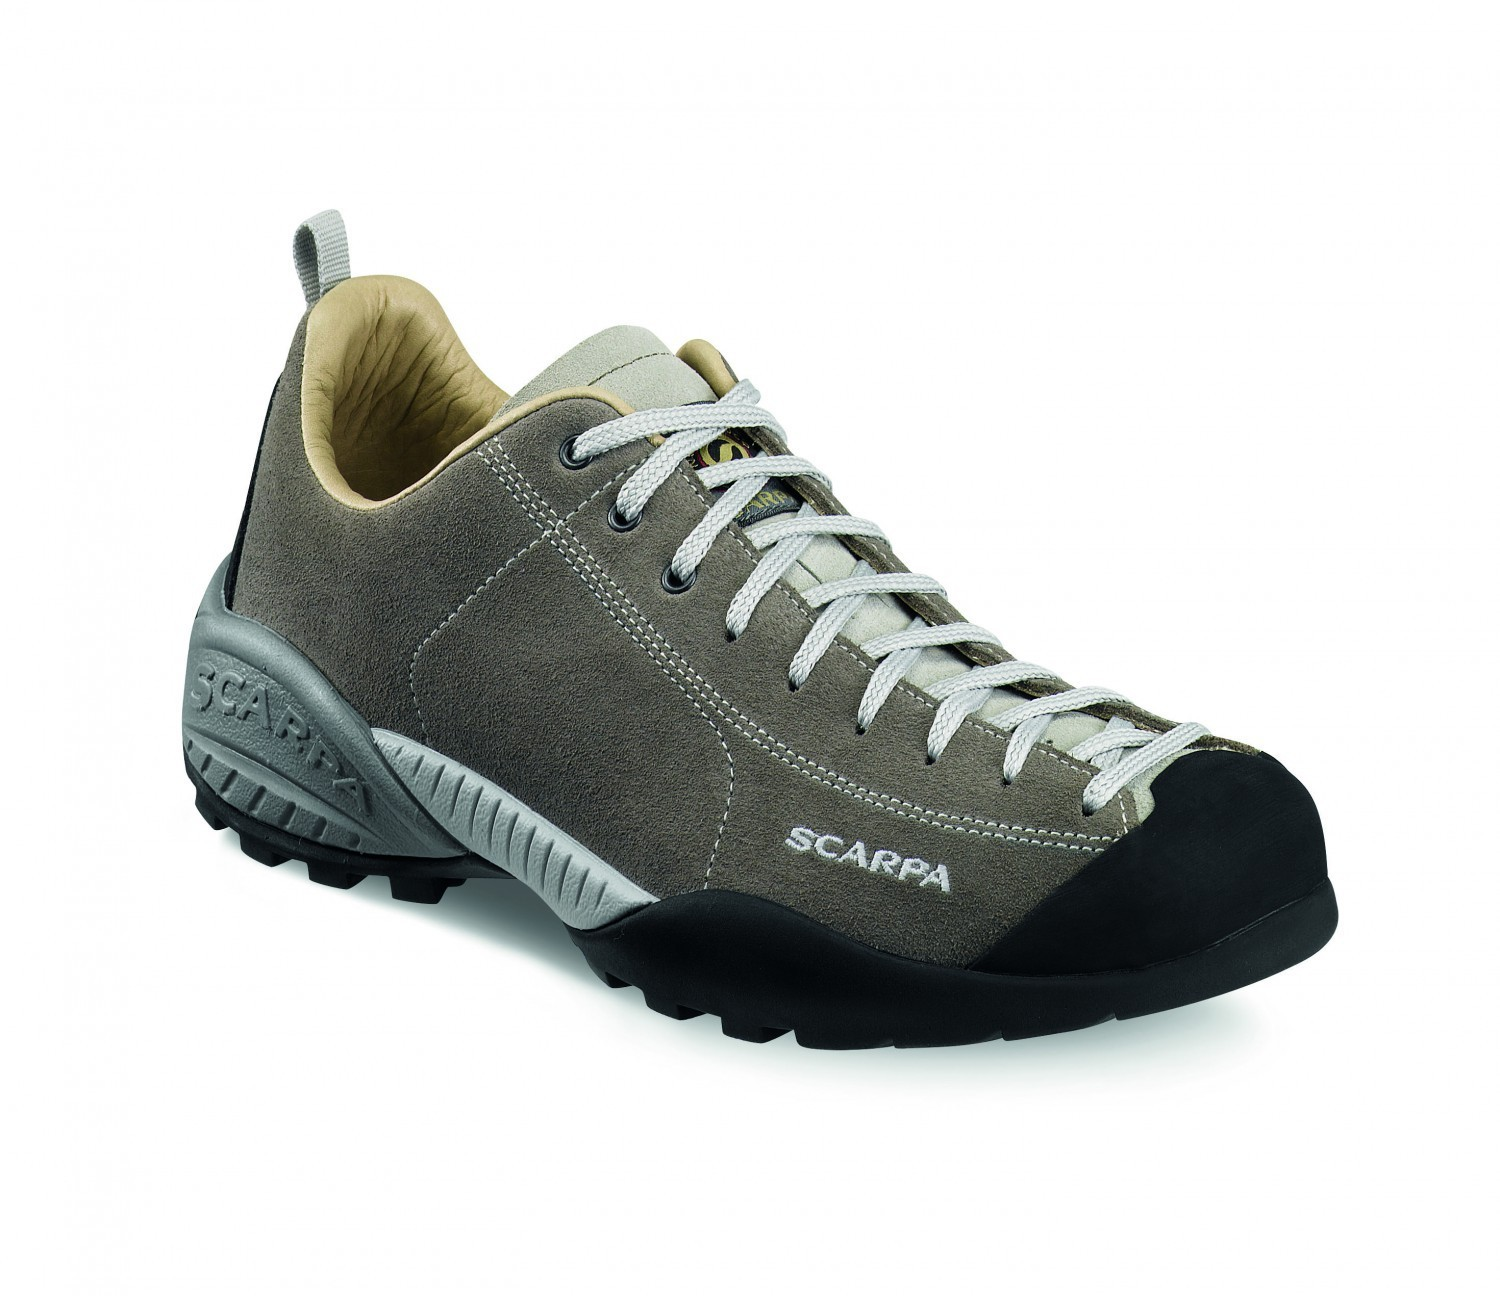 Scarpa Mojito Leather